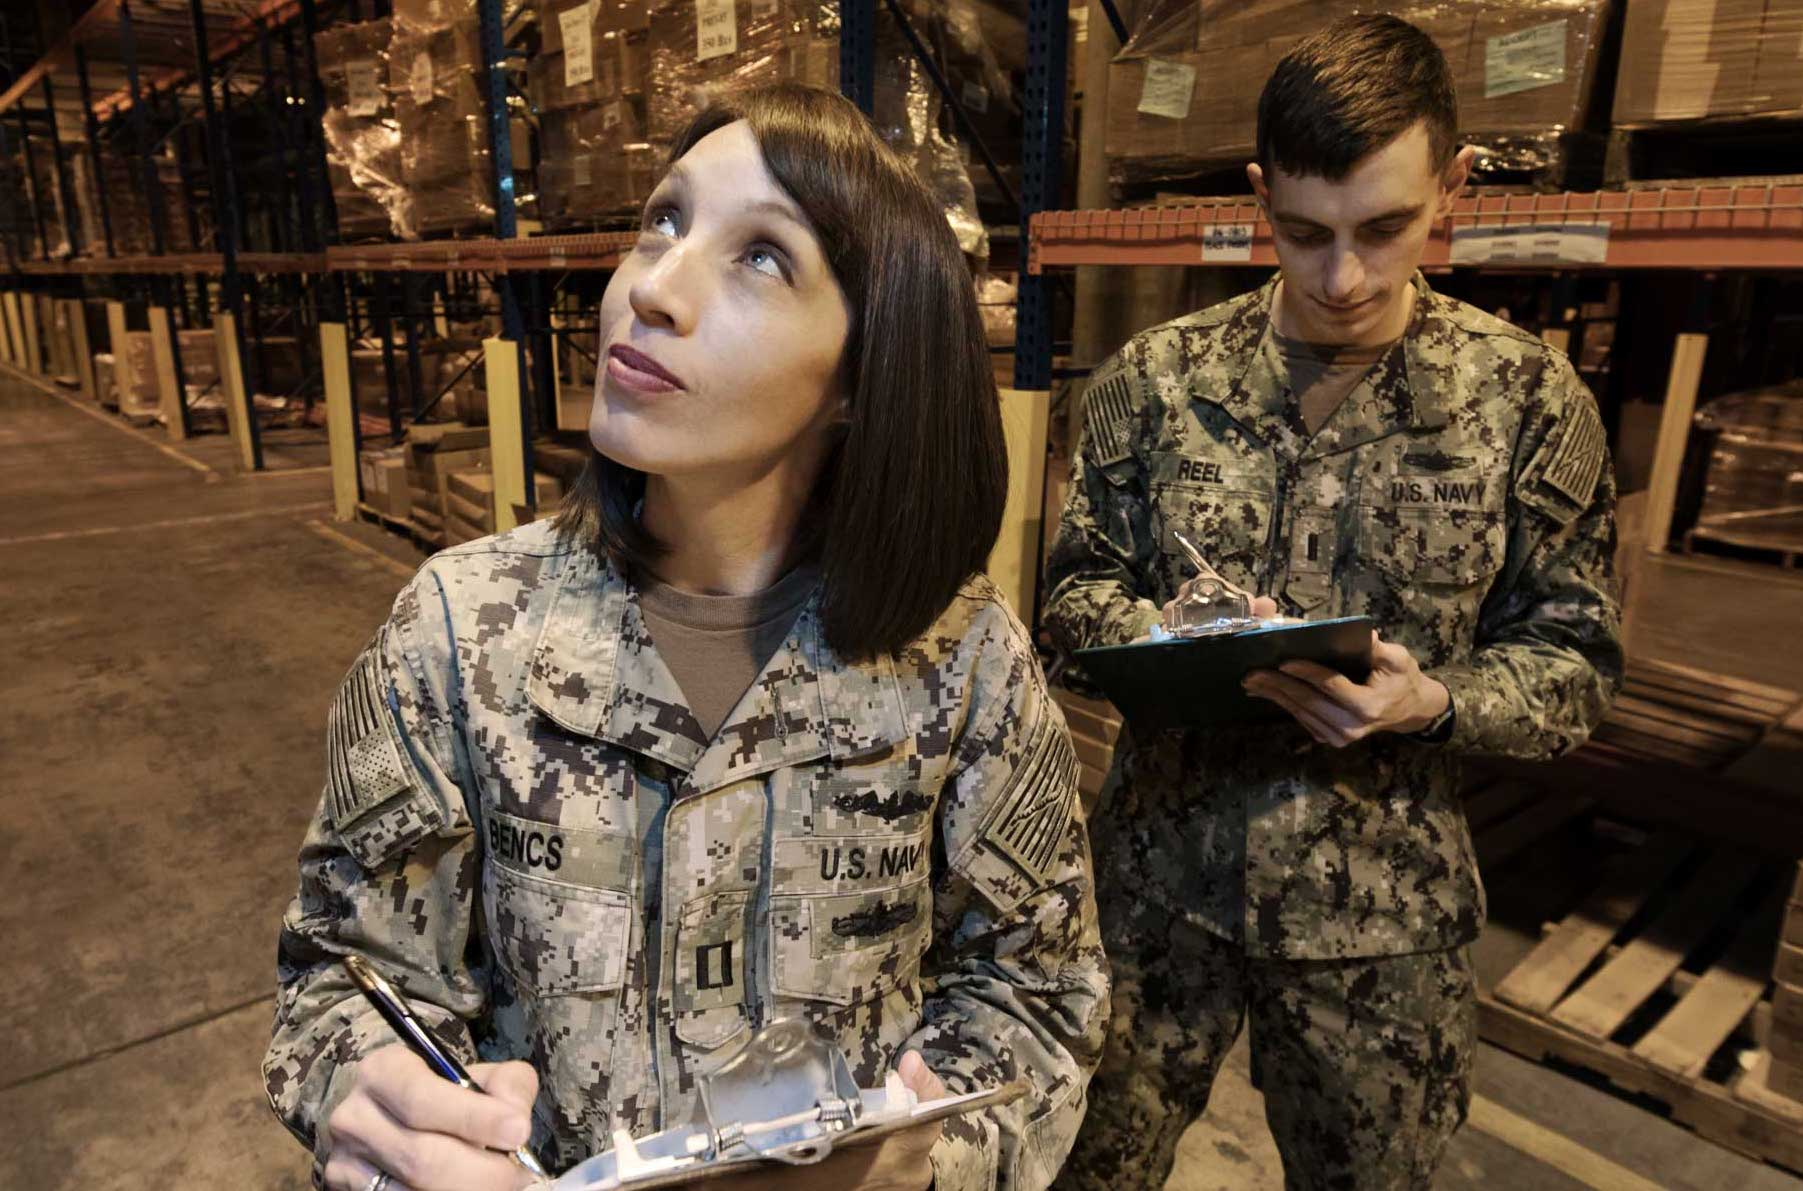 Navy, Marine Corps Moving to 'Zero-Based Budgeting' to Encourage Reform, Cut Lower Priorities